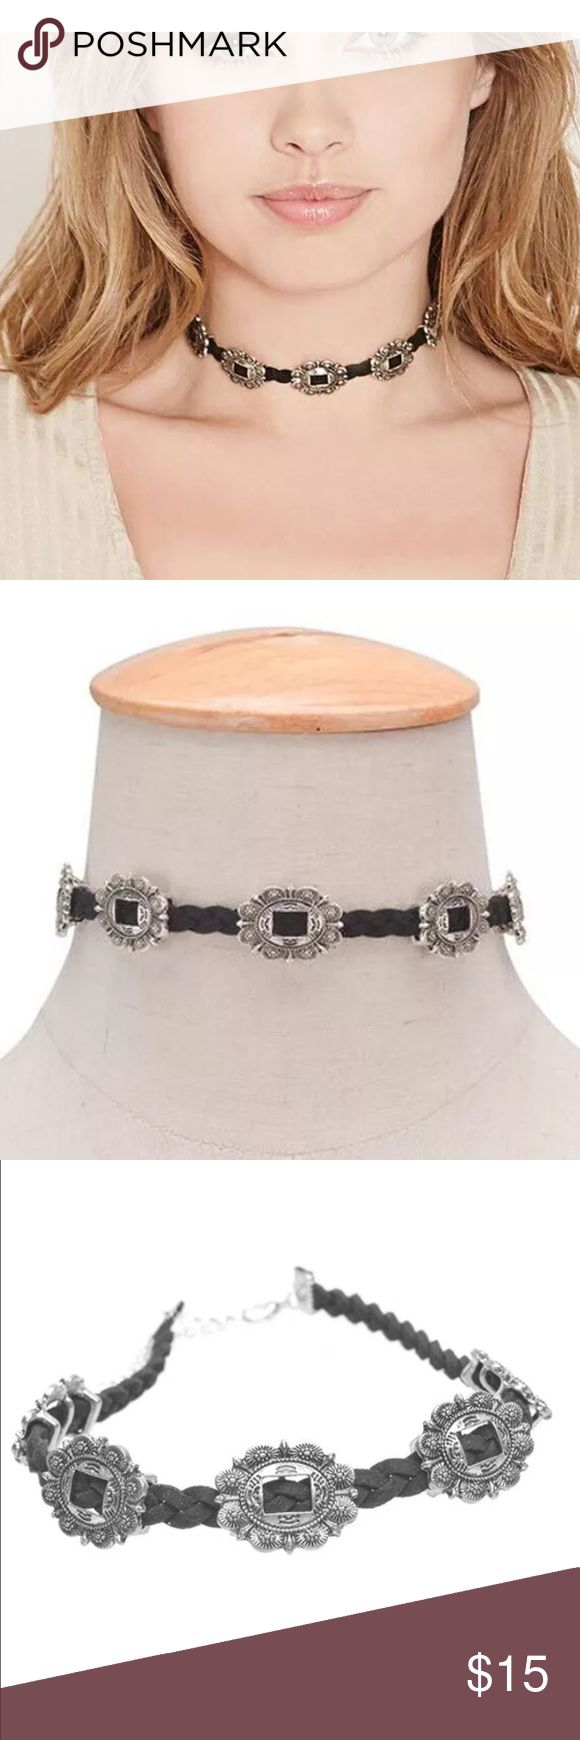 New✨ Antique Silver Engraved Flower Choker  ✨ ✨Fashion Jewelry ✨Silver Plated  🔸Brand New✨ 🔸PRICE IS FIRM- already listed at lowest price  🔸If you want to save please look into bundling  🔸In Stock 🔸No Trades 🔸Will ship within 24 hours Monday-Friday 🚫Please -NO- Offers on items priced $10 and under and on Sale Items! 🔺Serious Inquiries Only❣️  🔹Bundle one or more items from my boutique to only pay one shipping fee and SAVE Money❣️ Jewelry Necklaces